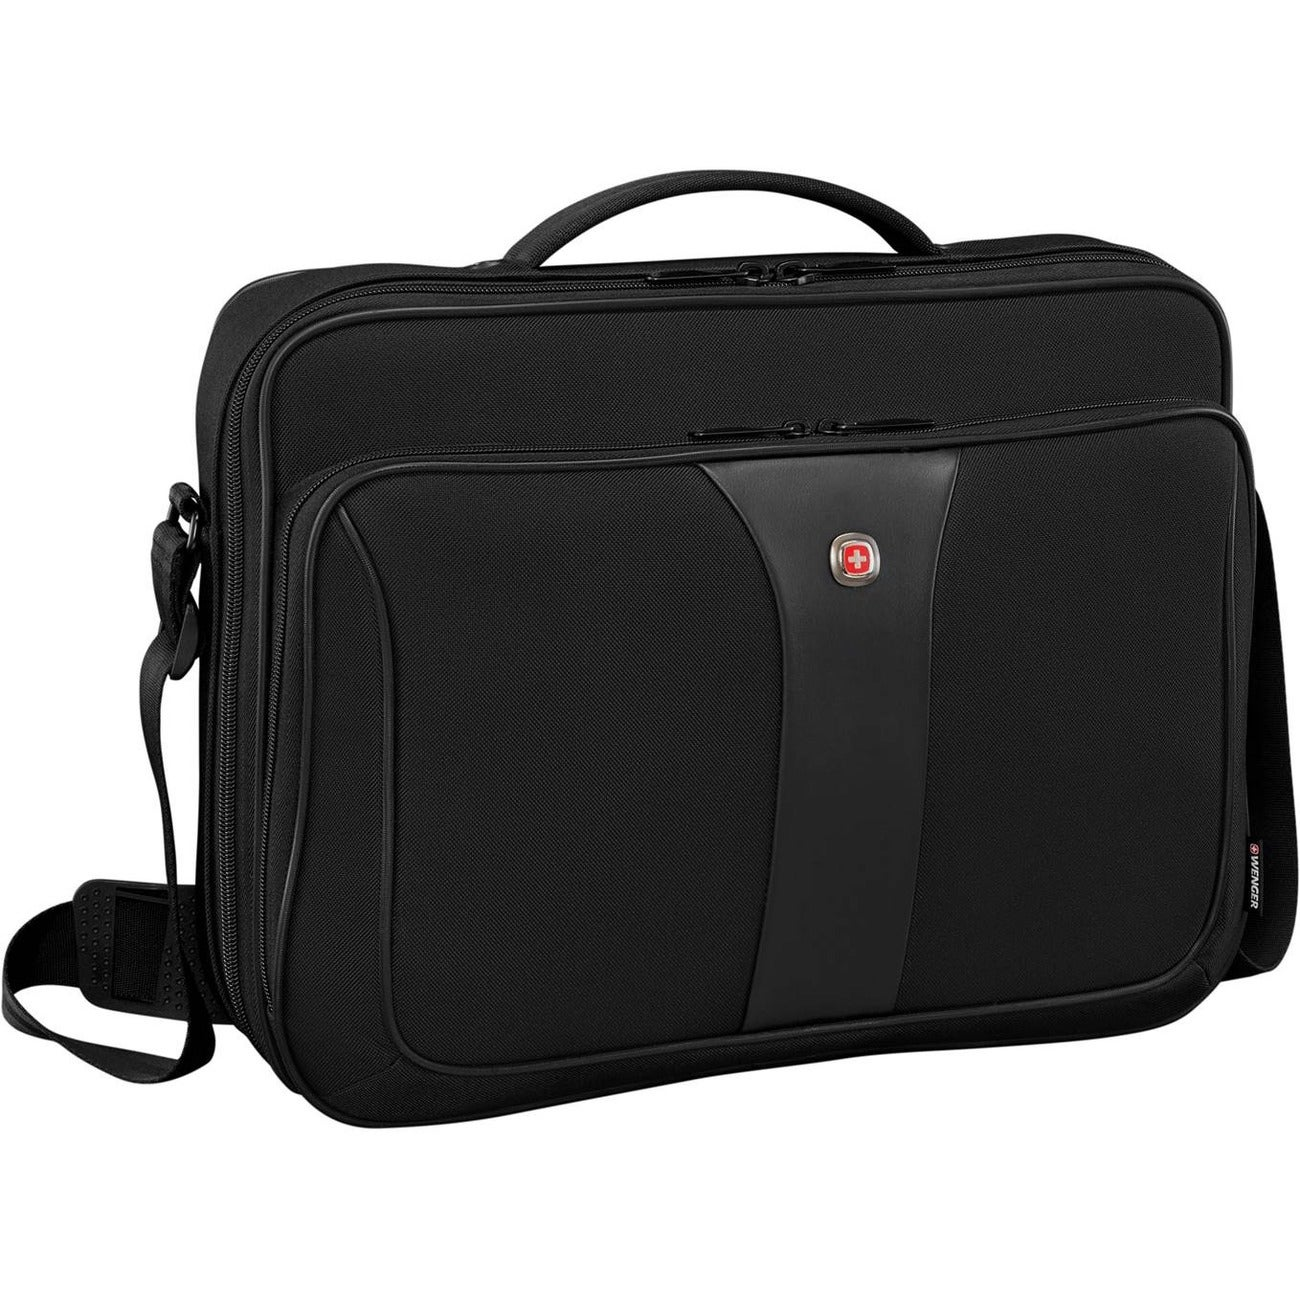 "ARMY Swissgear Carrying Case (Briefcase) for 16"" Tablet, ..."